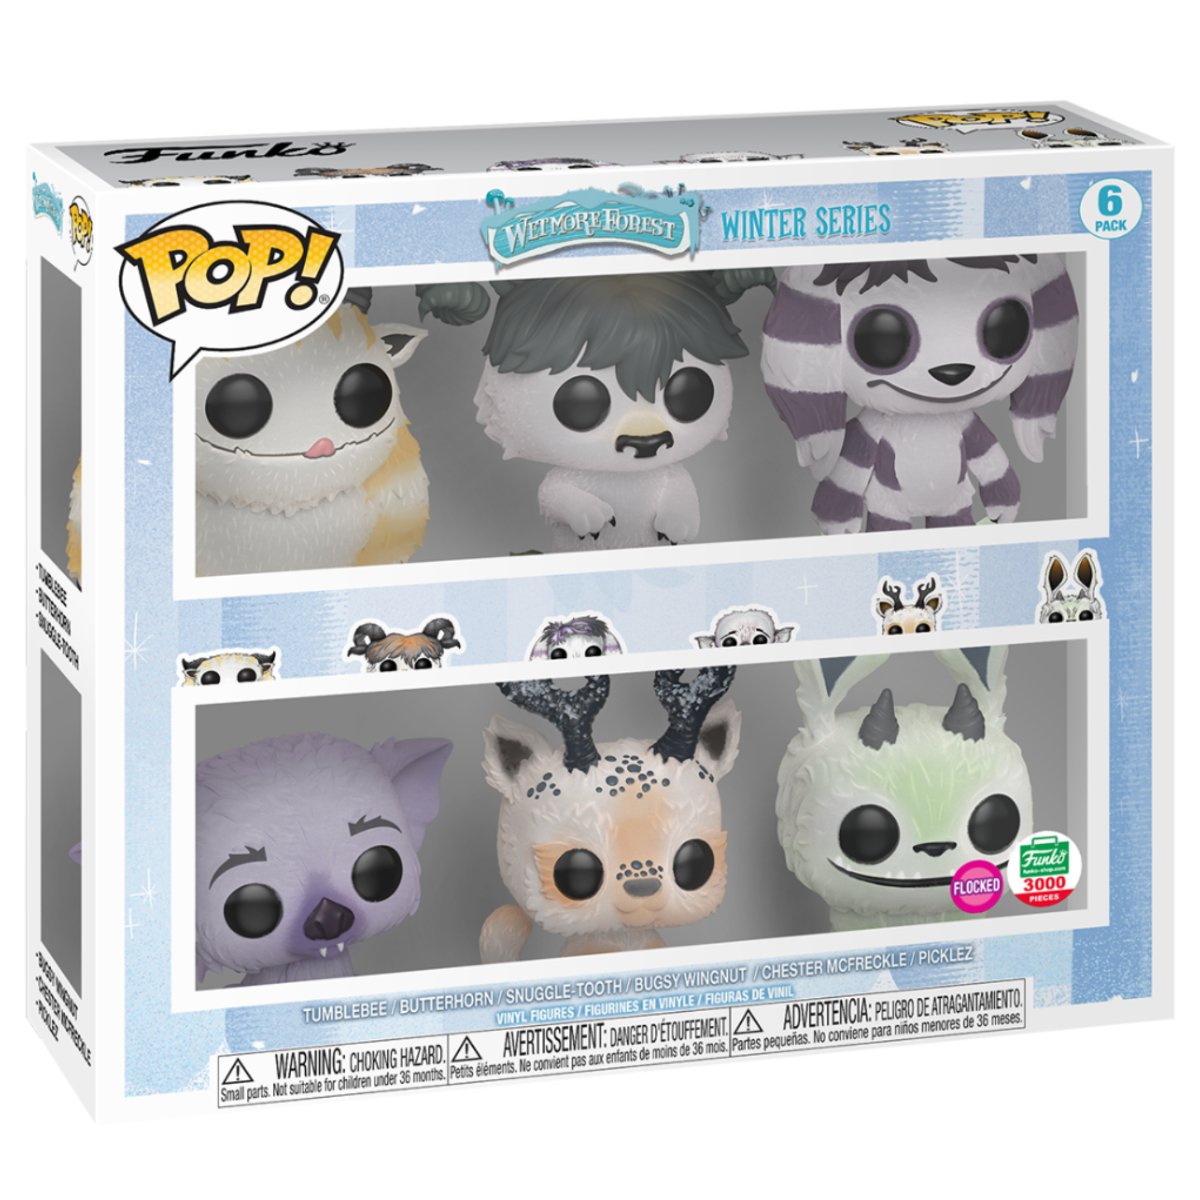 Funko Pop 6-Pack Wetmore Forest Winter Series 21549 Flocked 3000 Pieces